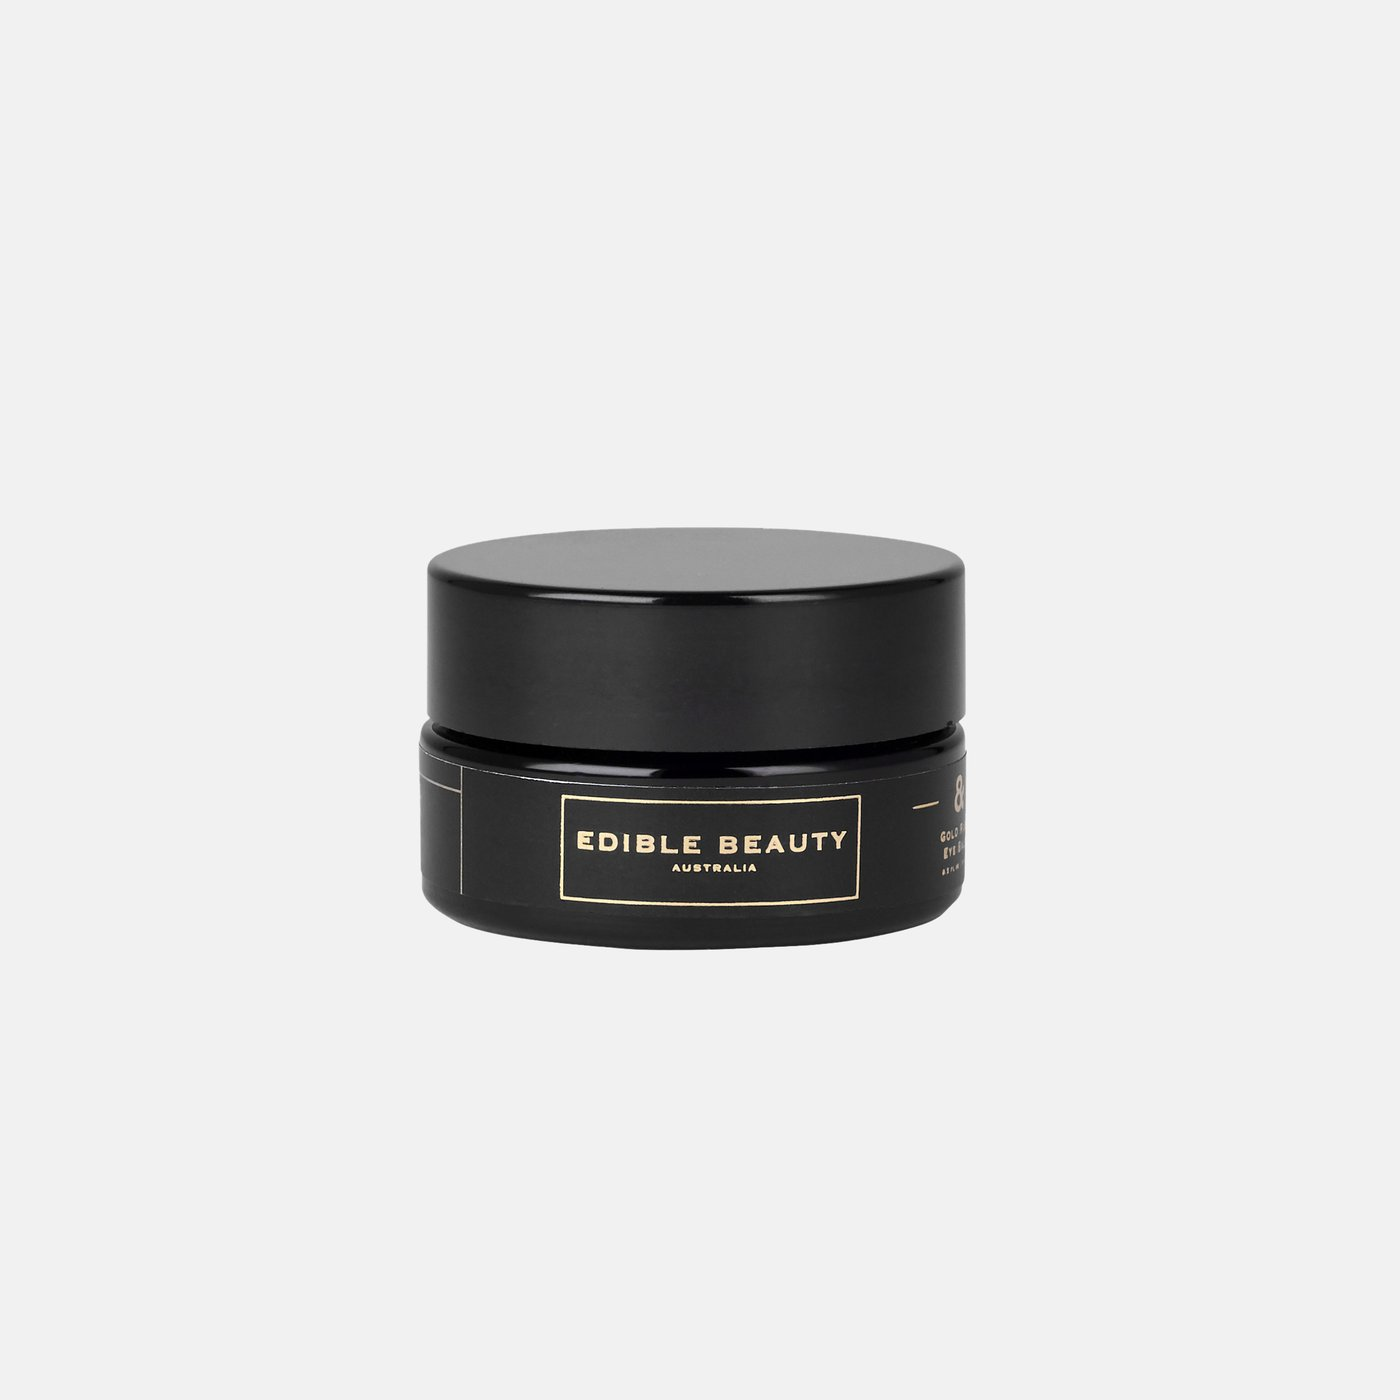 mothers day gift ideas - edible beauty eye cream